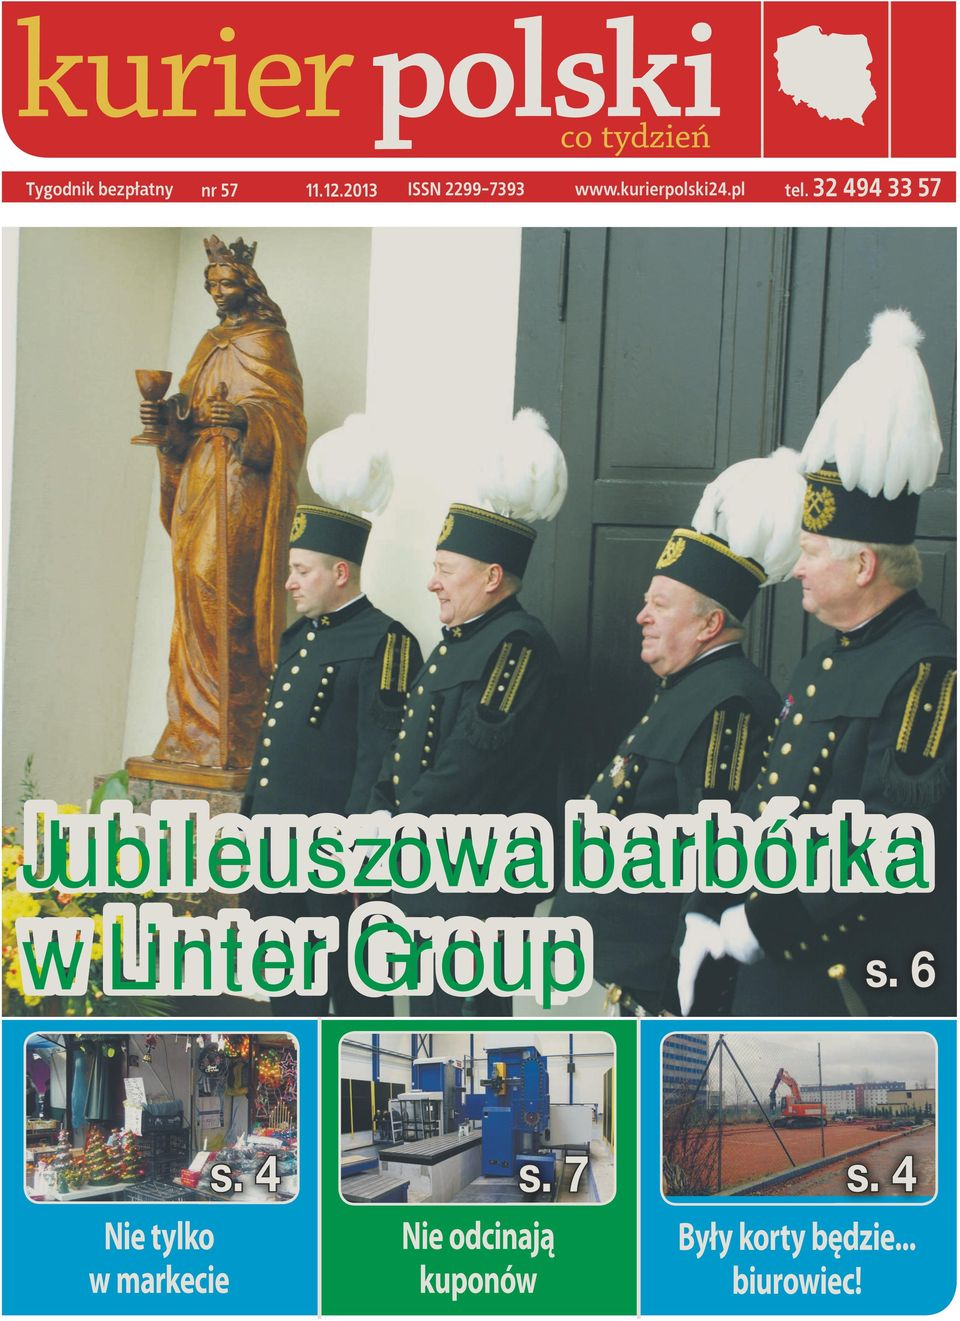 32 494 33 57 Jubileuszowa barbórka w Linter Group